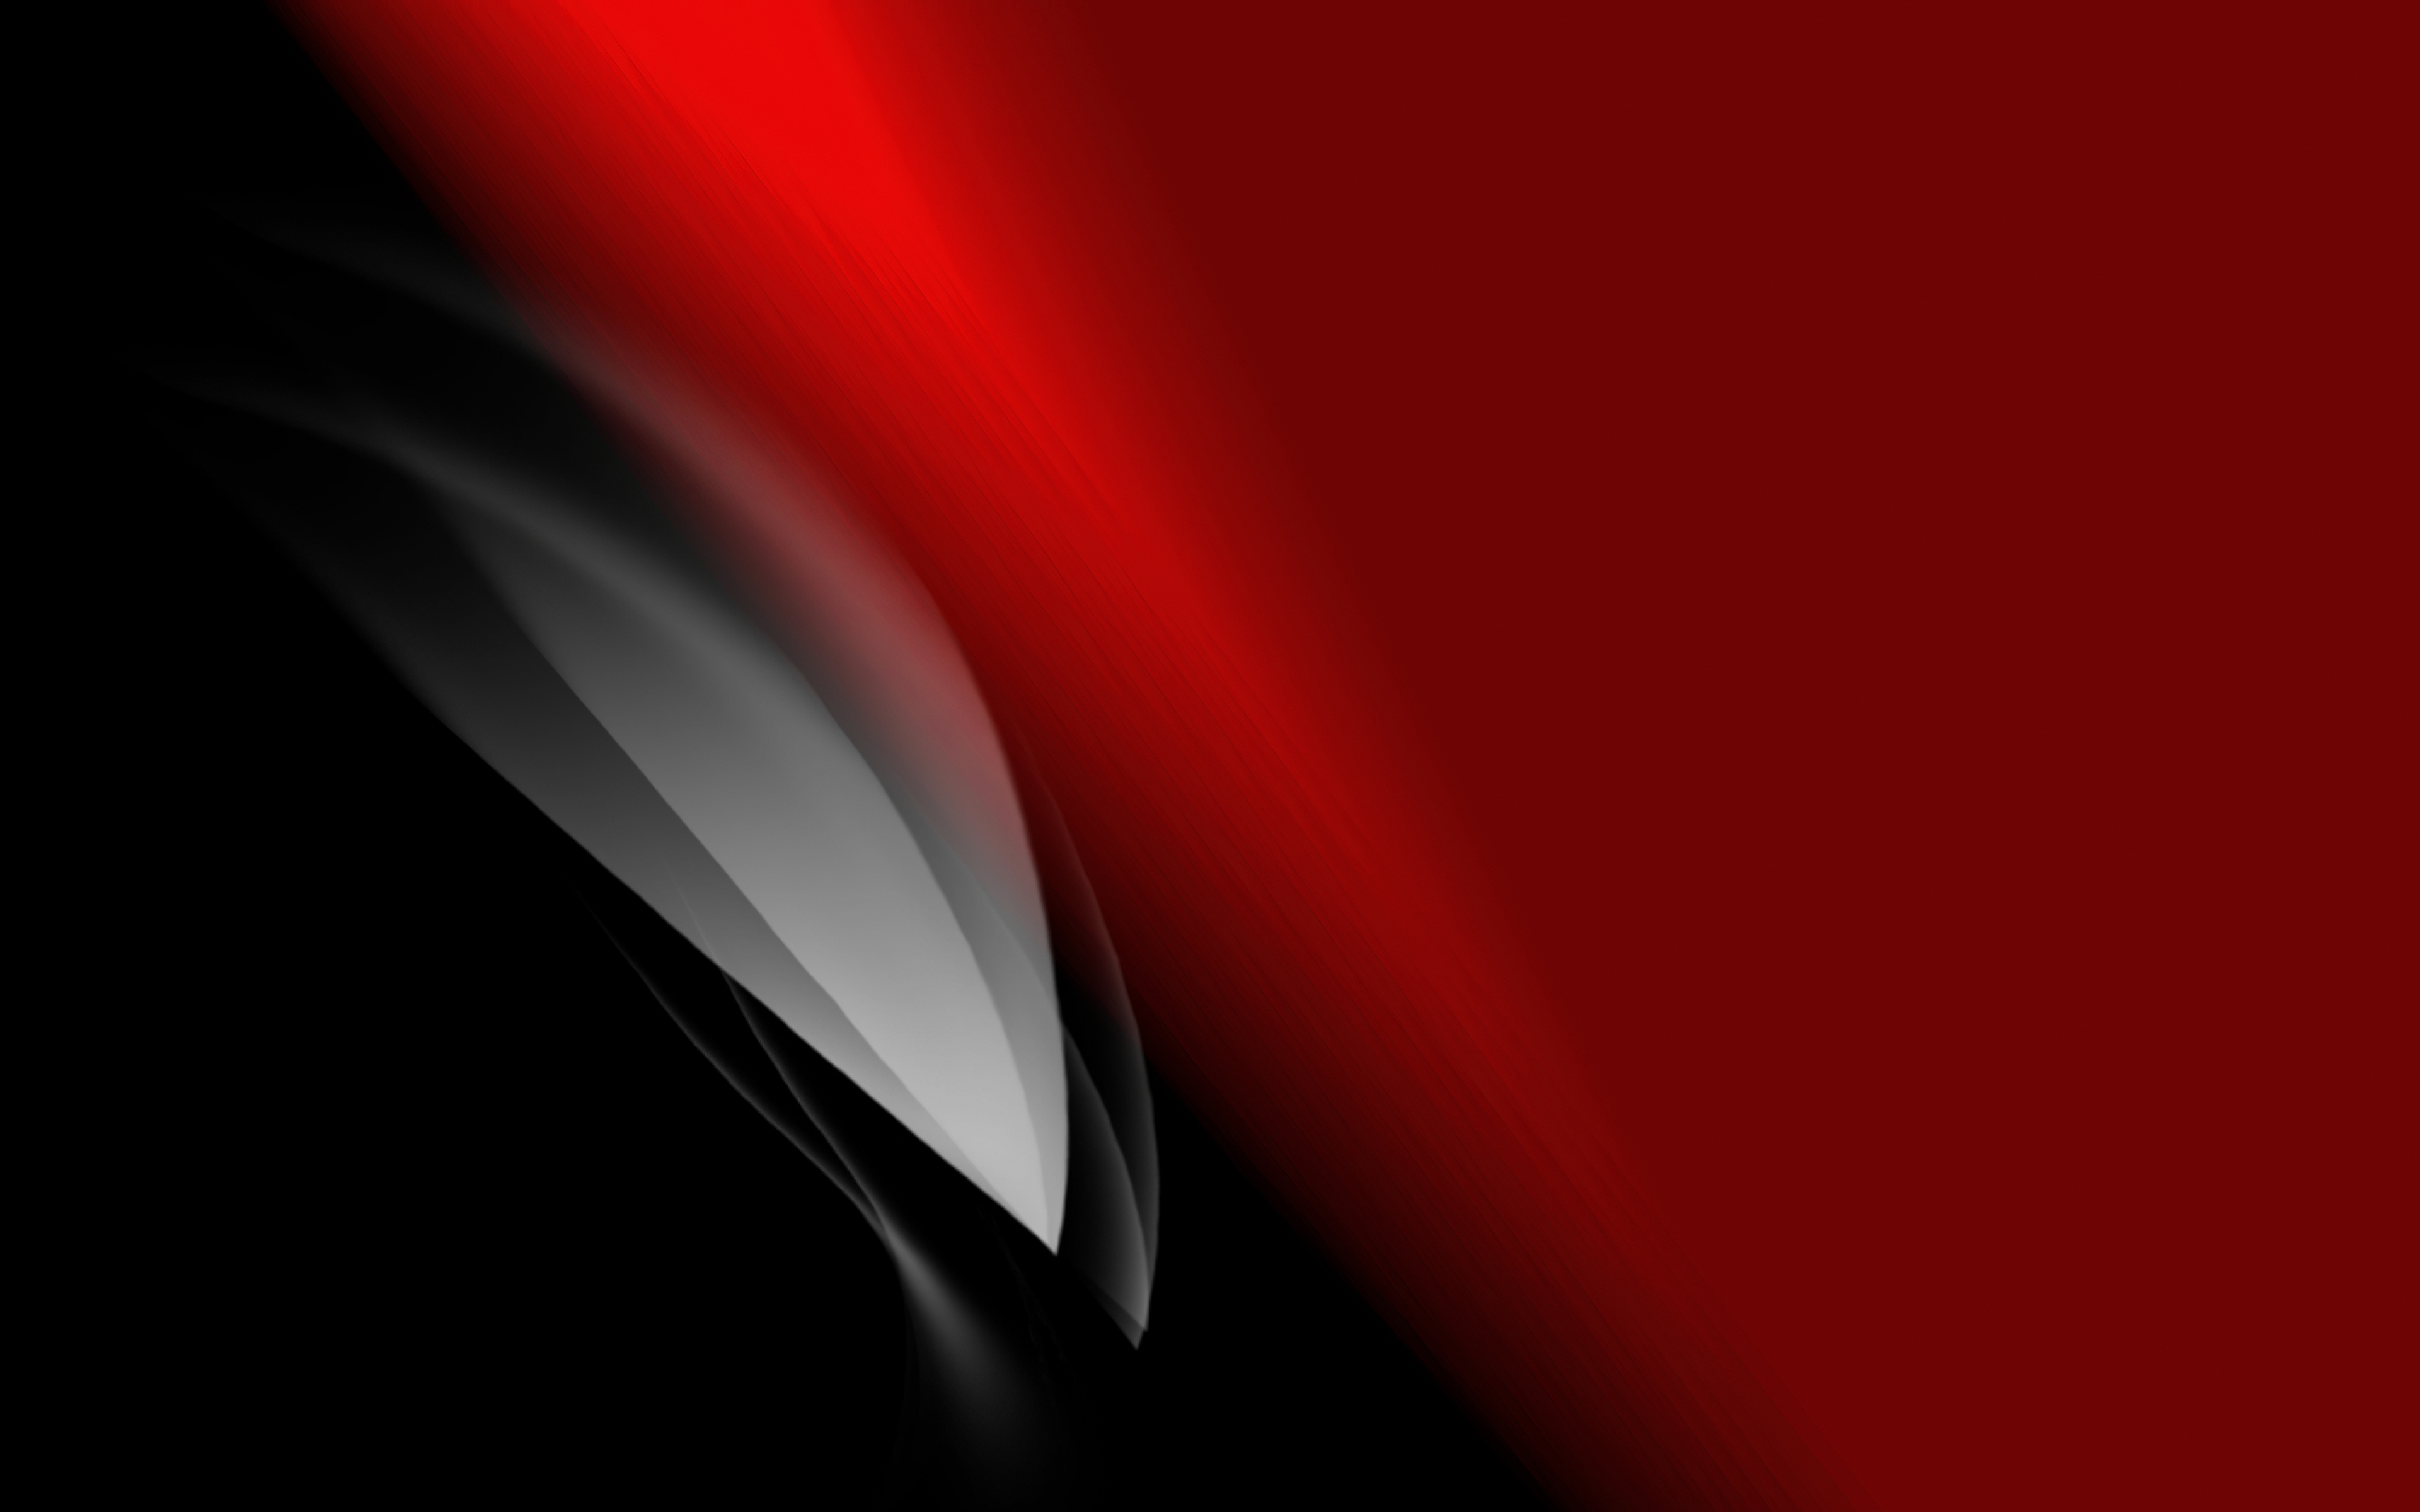 3840x2400 Abstract Red Flow 4k 4k HD 4k Wallpapers, Images ...